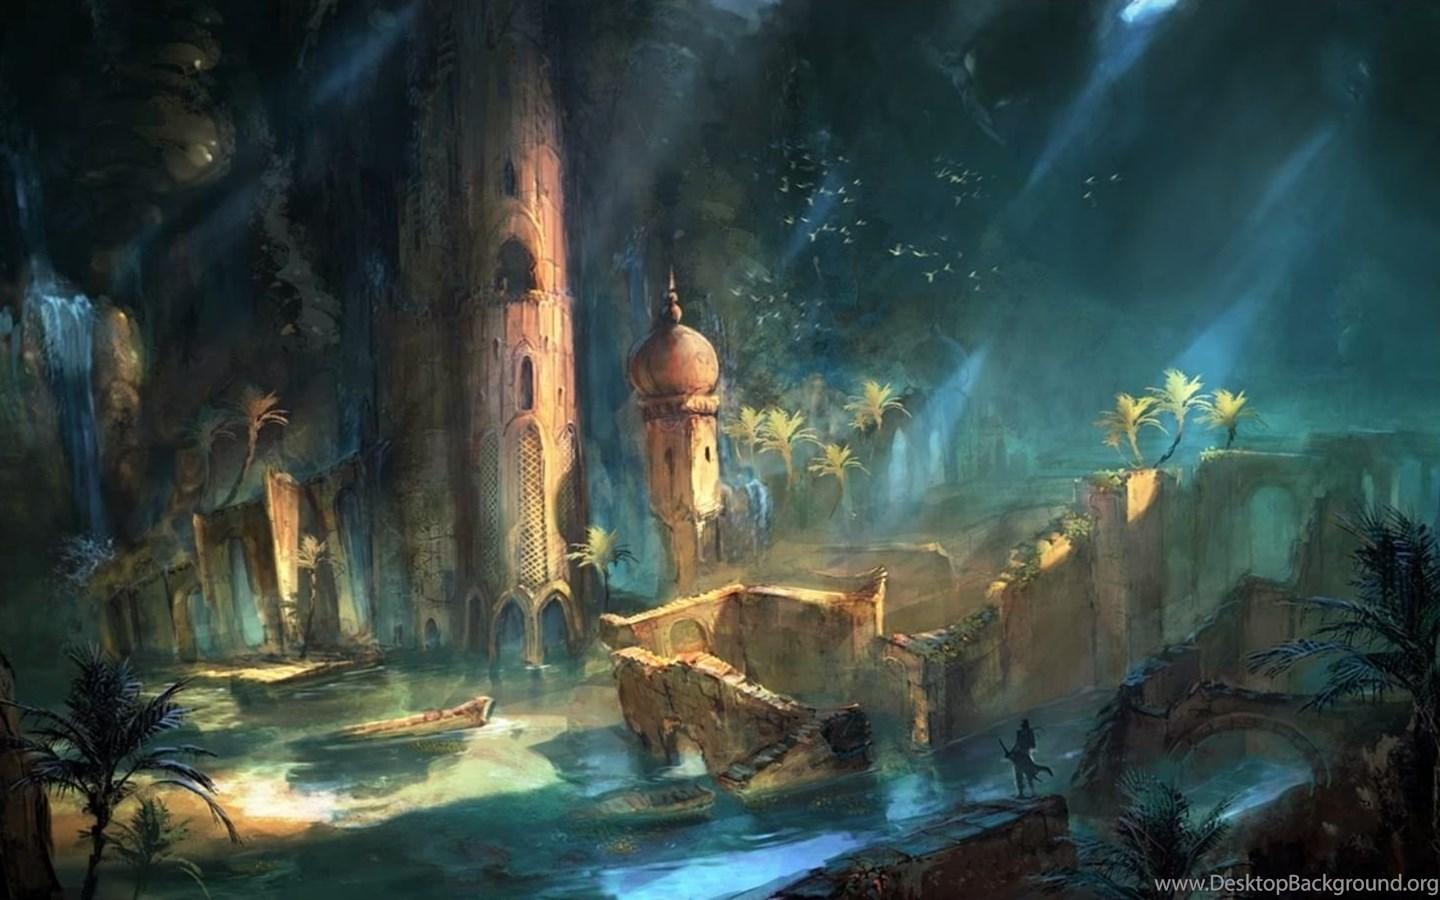 Prince Of Persia Hd Wallpapers Desktop Background